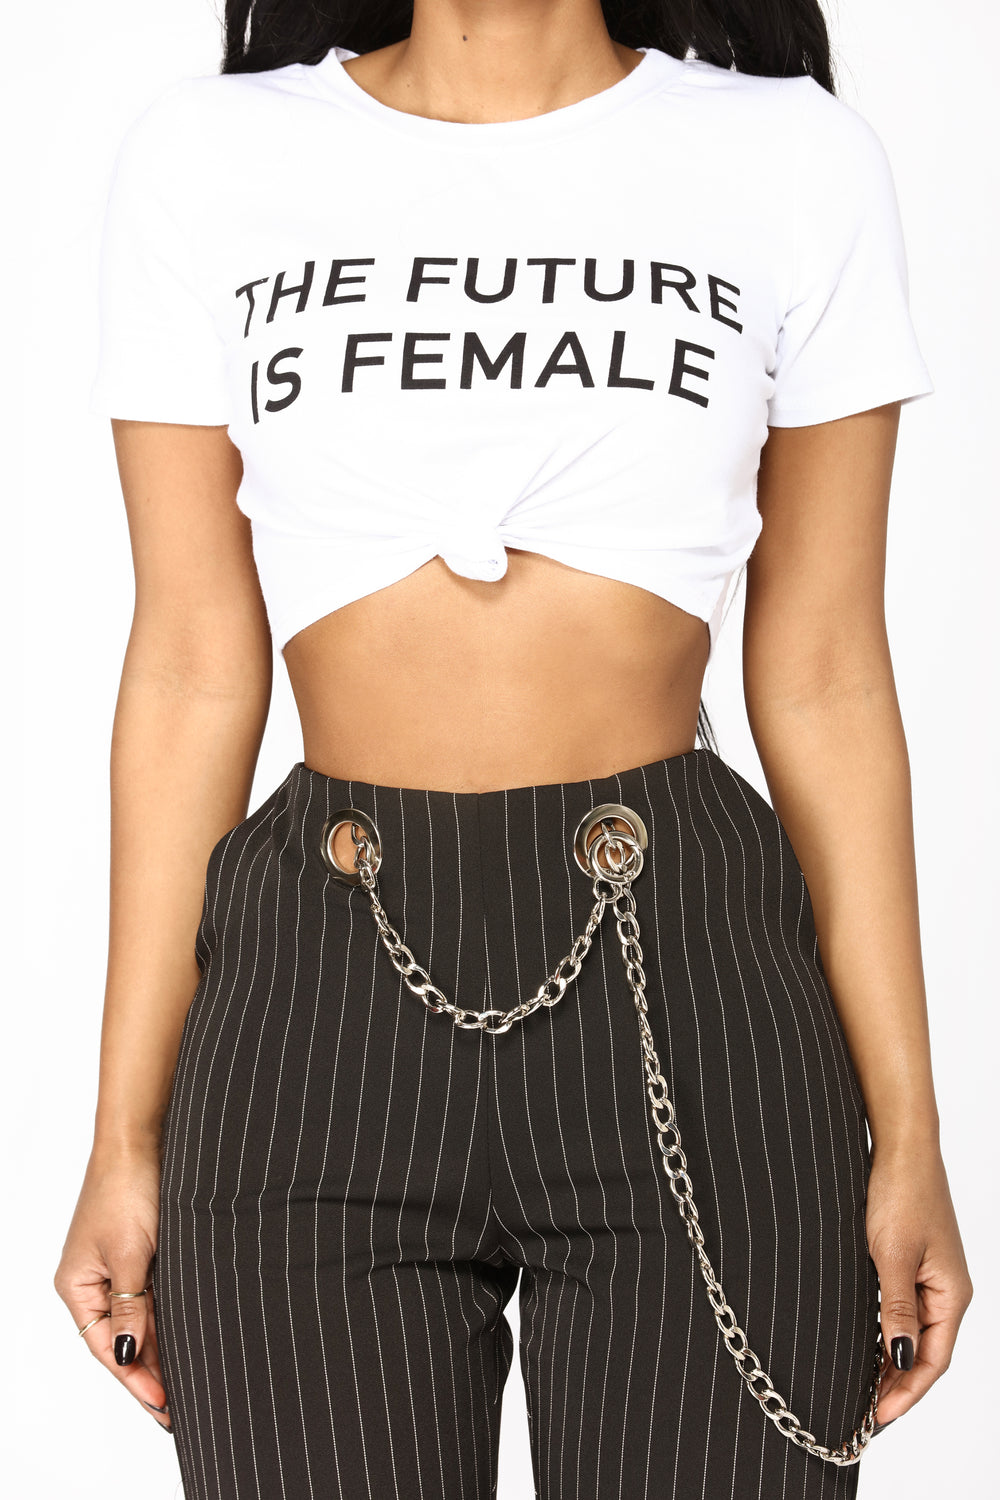 Yes The Future Is Female Tee - White